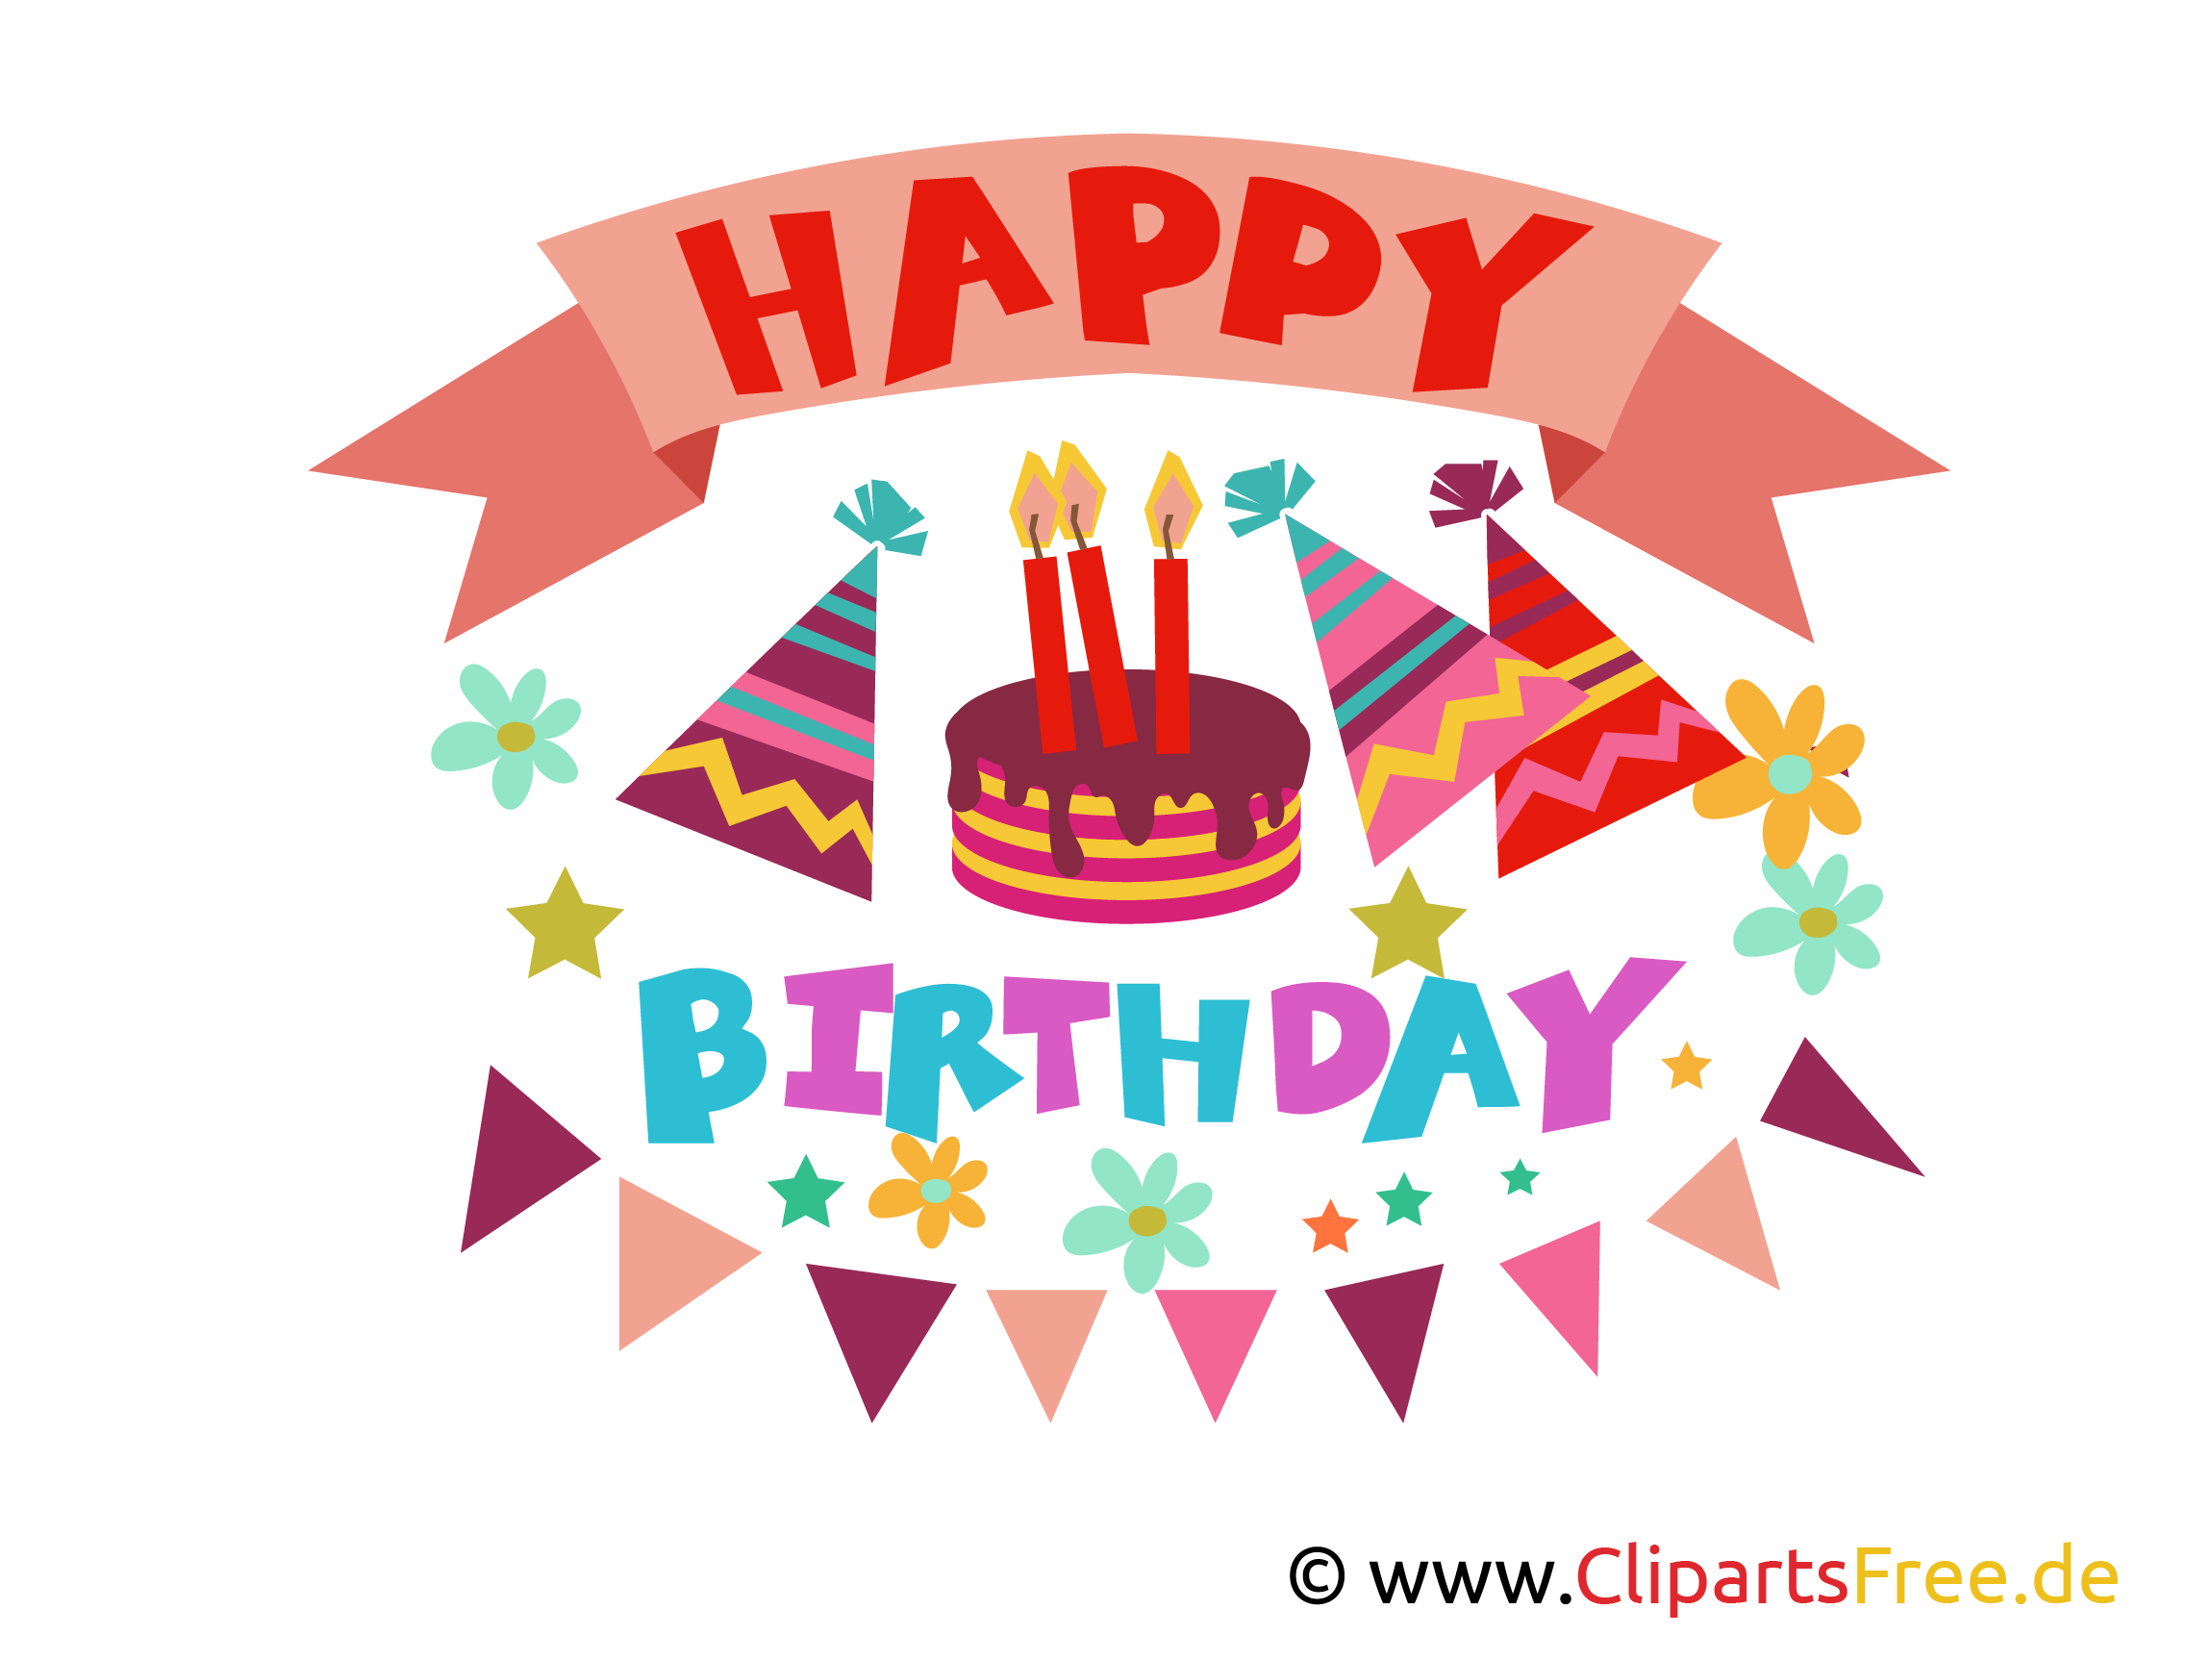 Happy Birthday Bilder, Cliparts, Illustrationen